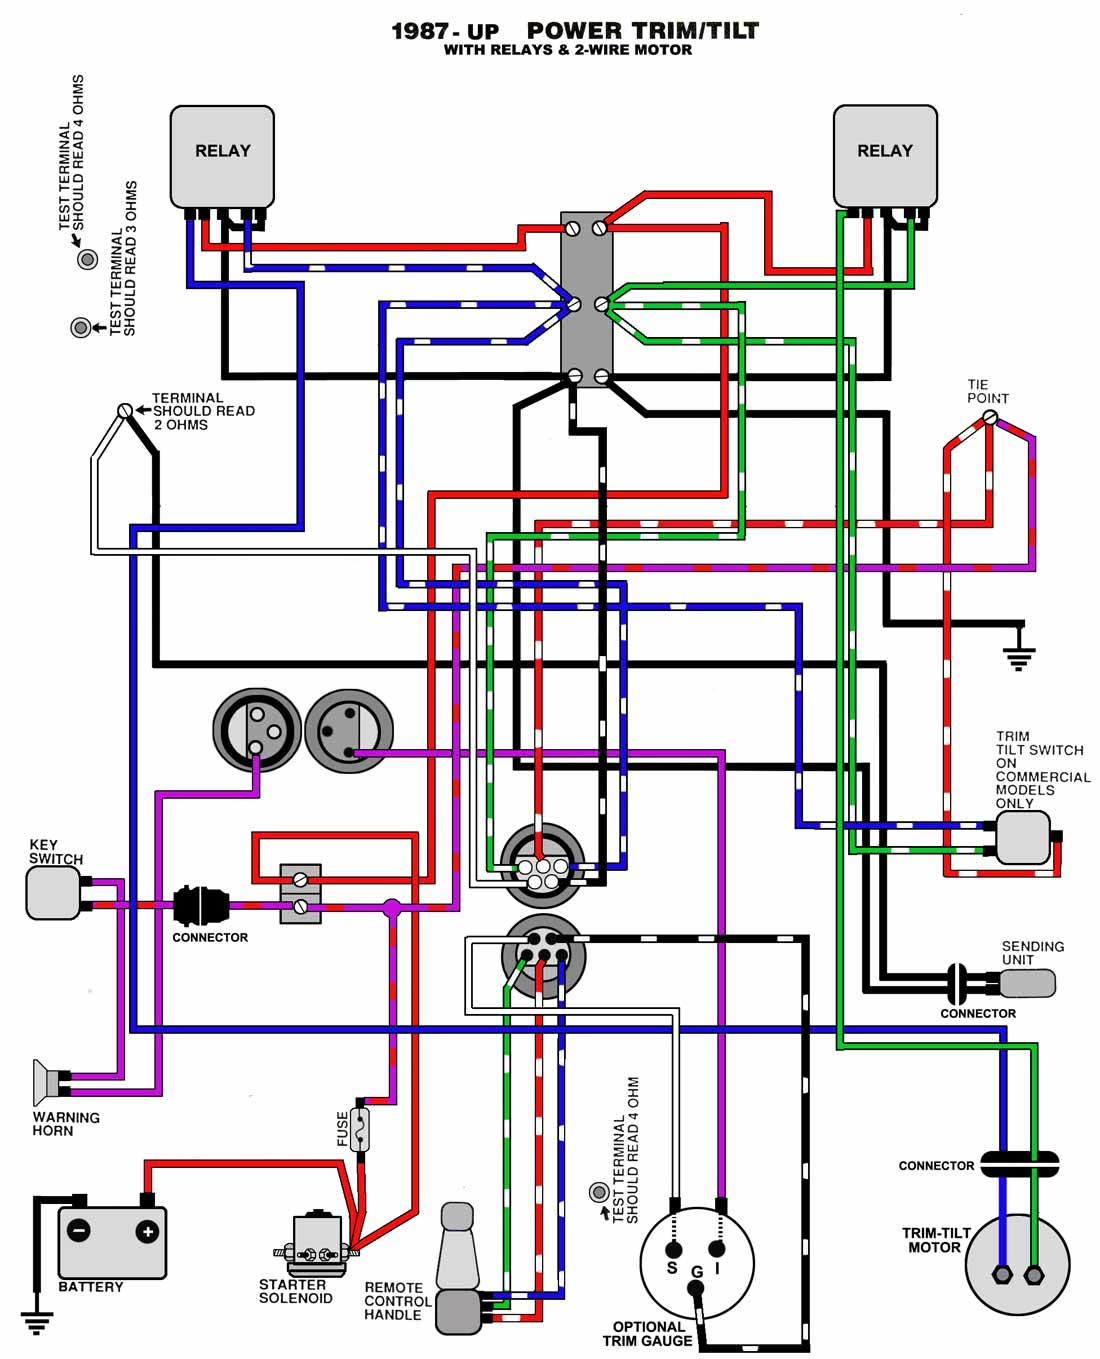 TnT_87_UP mastertech marine evinrude johnson outboard wiring diagrams Boat Ignition Switch Wiring Diagram at cos-gaming.co